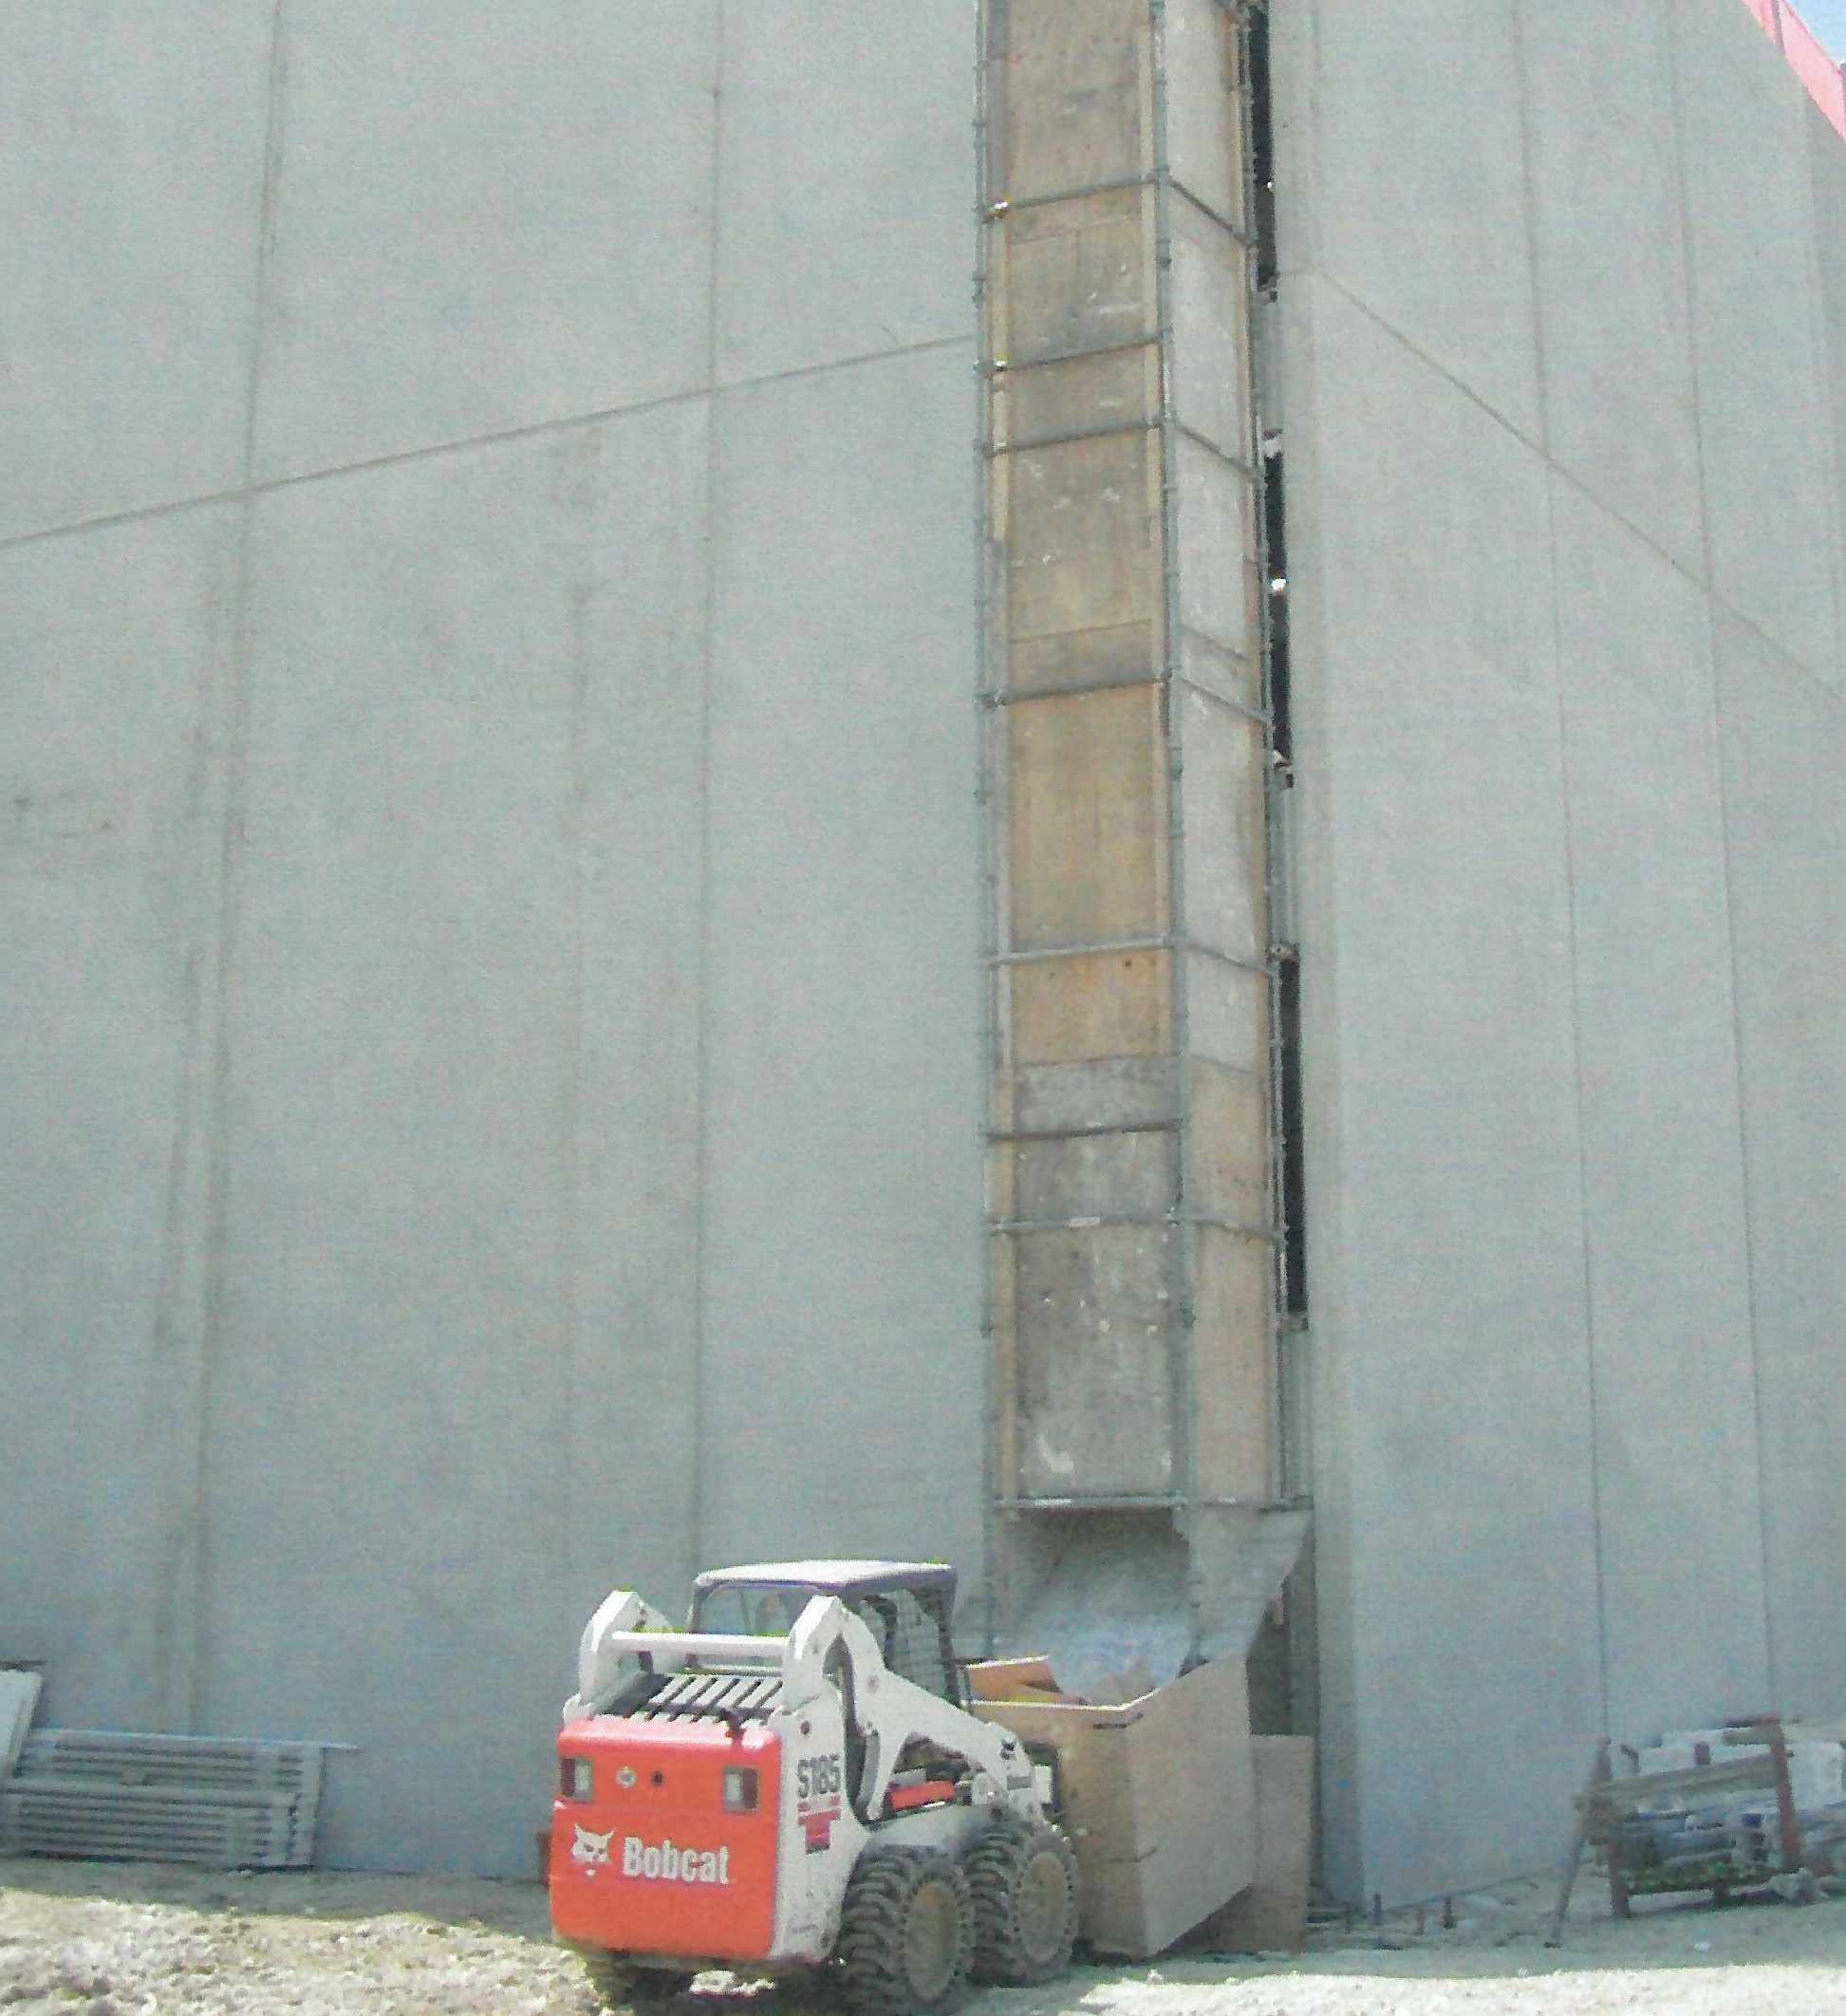 debris trash chute pictured on the exterior of a building under construction - International Equipment